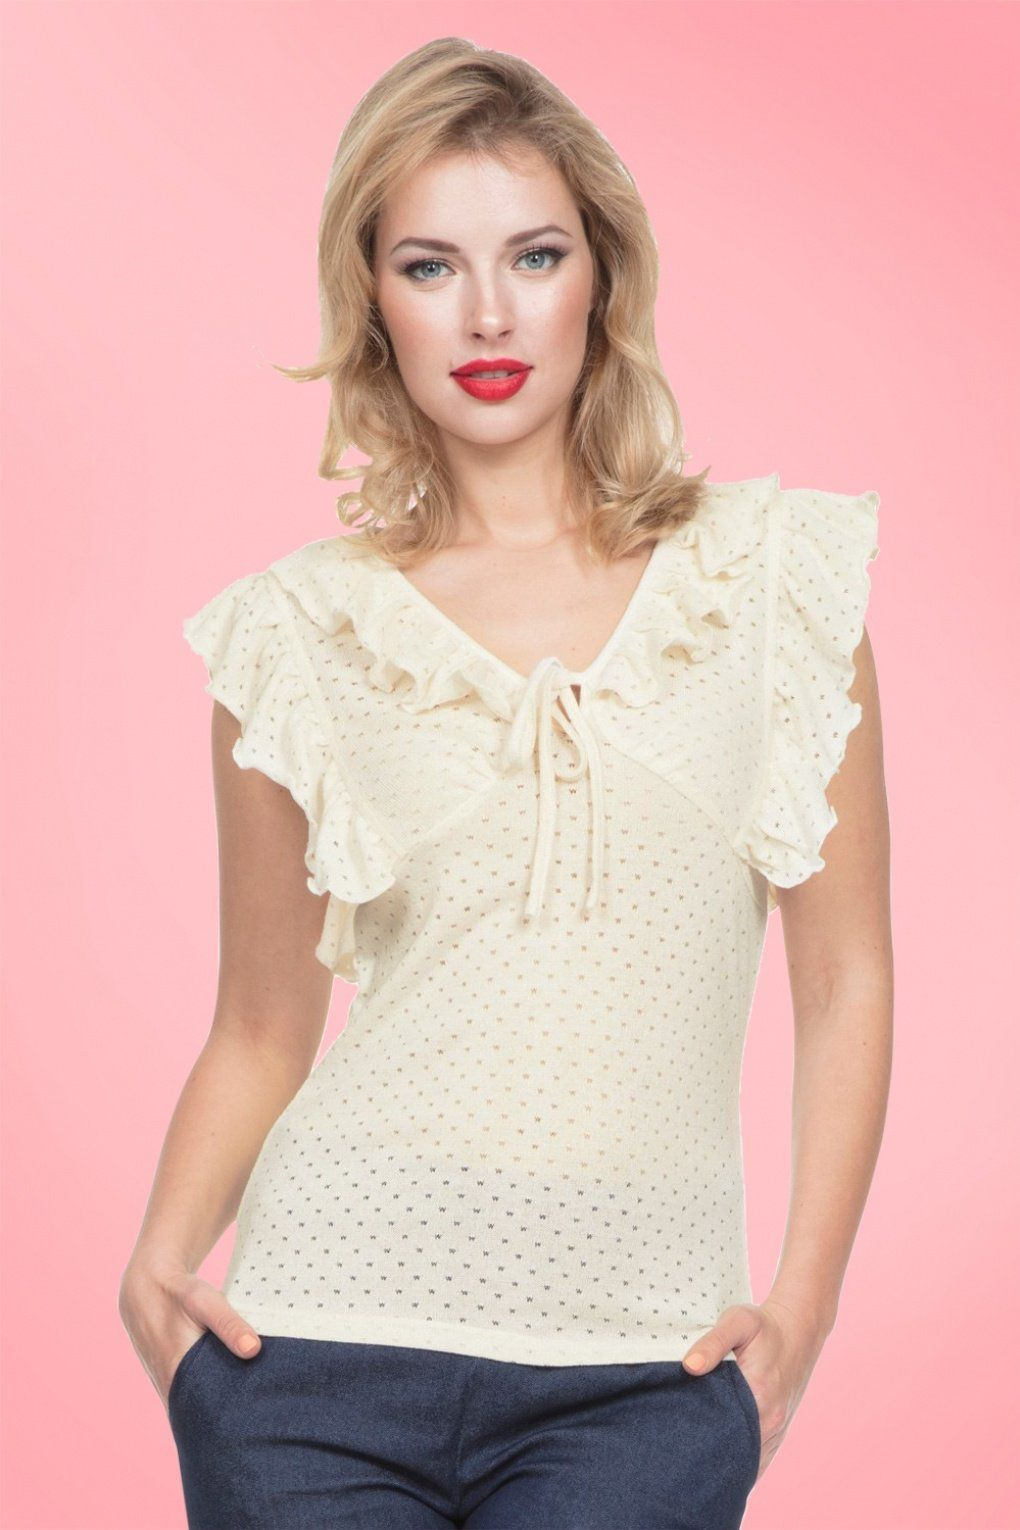 Vintage style dresses s s s and s retro style vintage